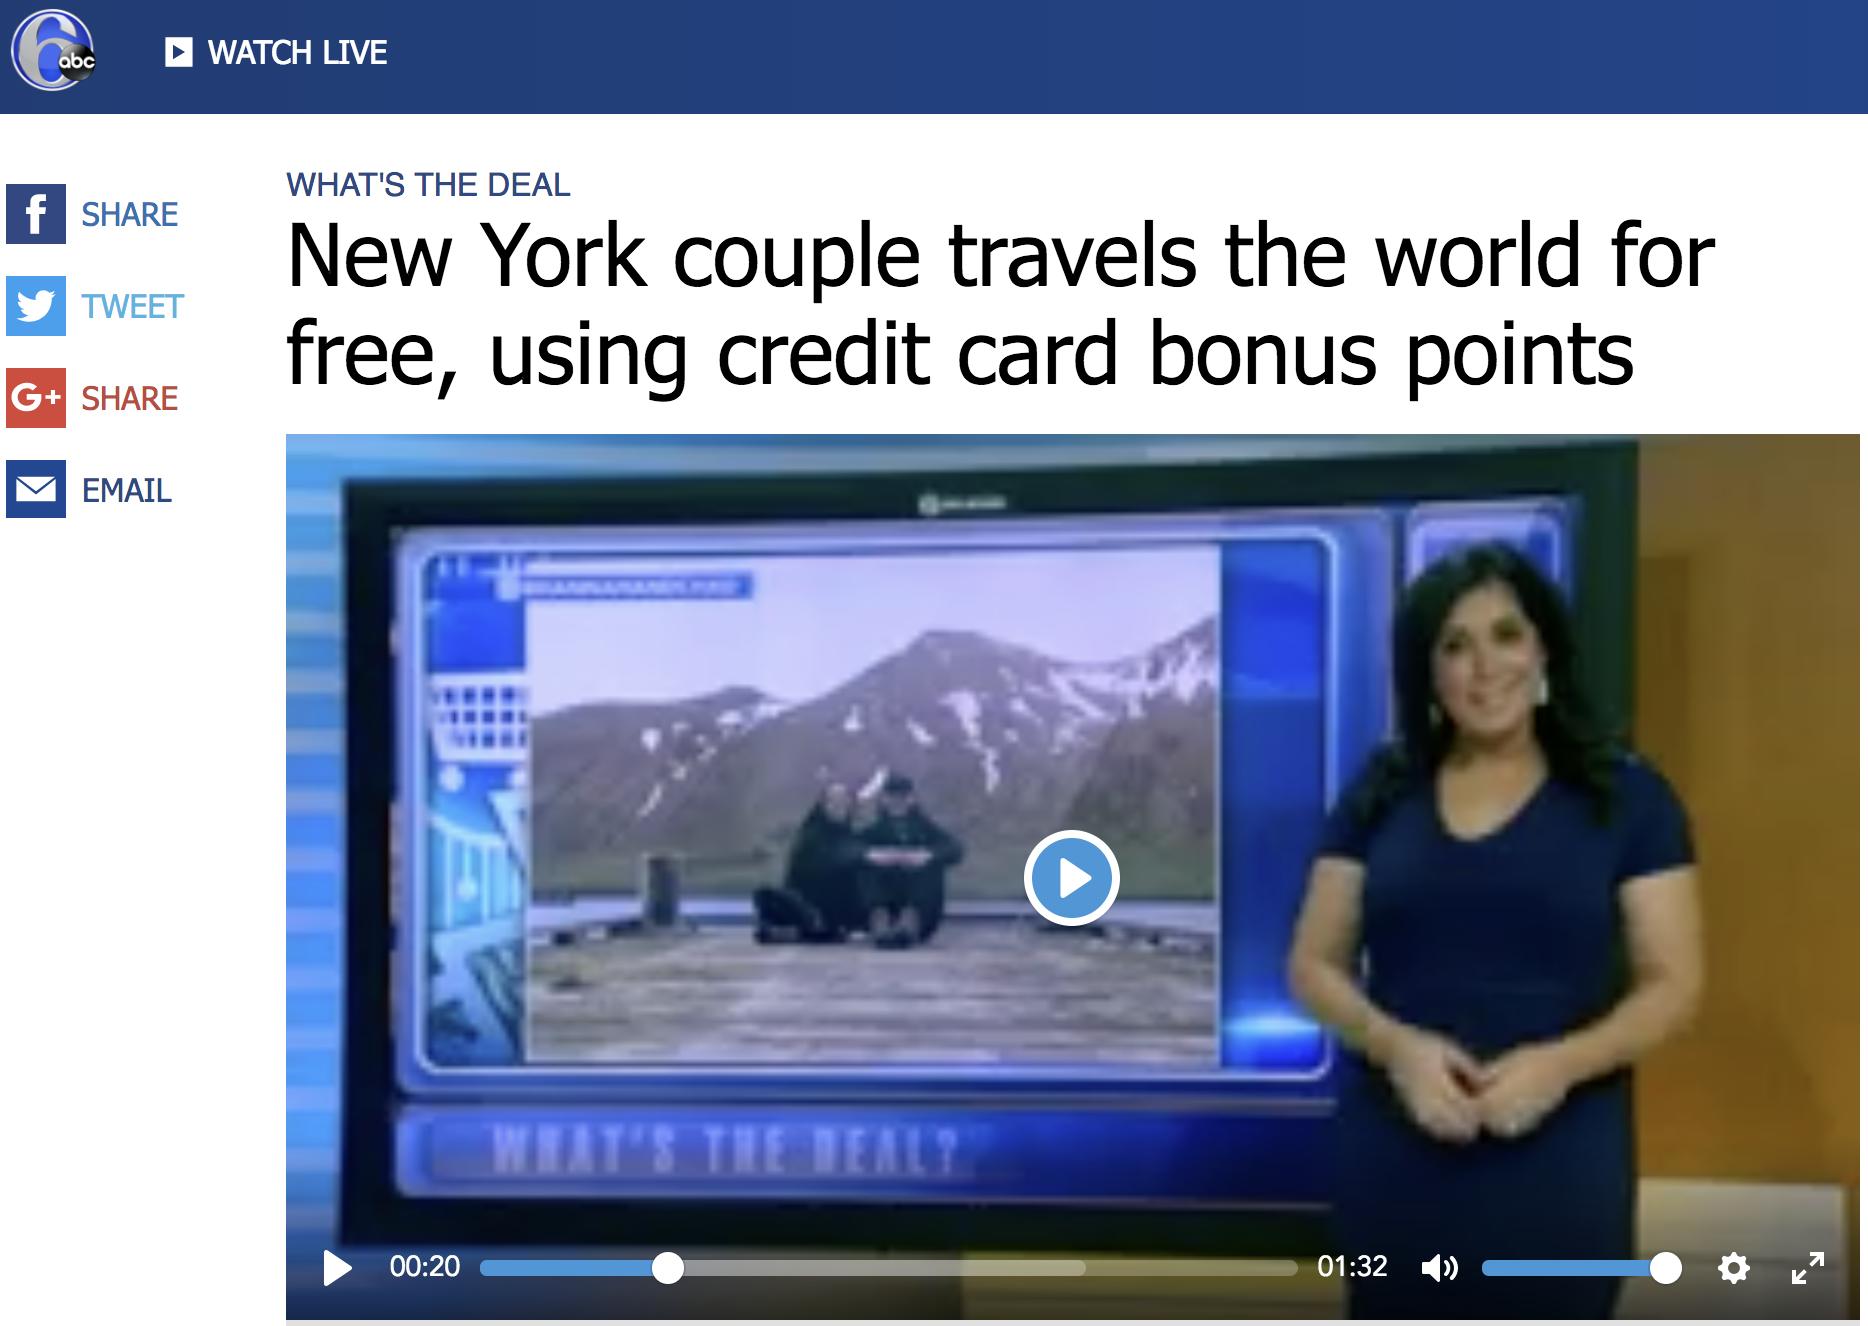 6abc TV - New York couple travels the world for free, using credit card bonus points